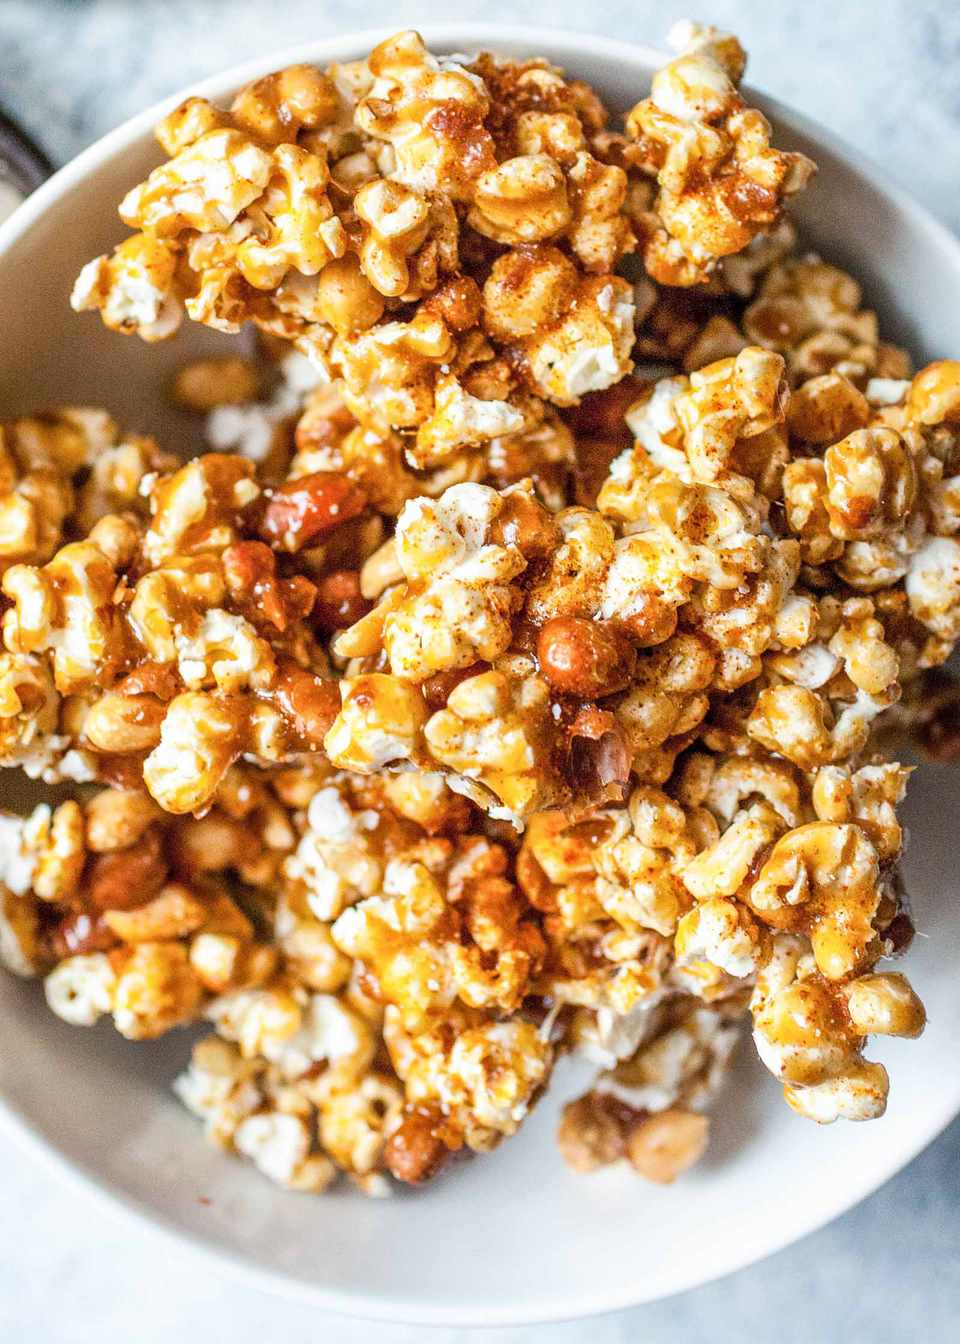 How to Make Caramel Popcorn with peanuts